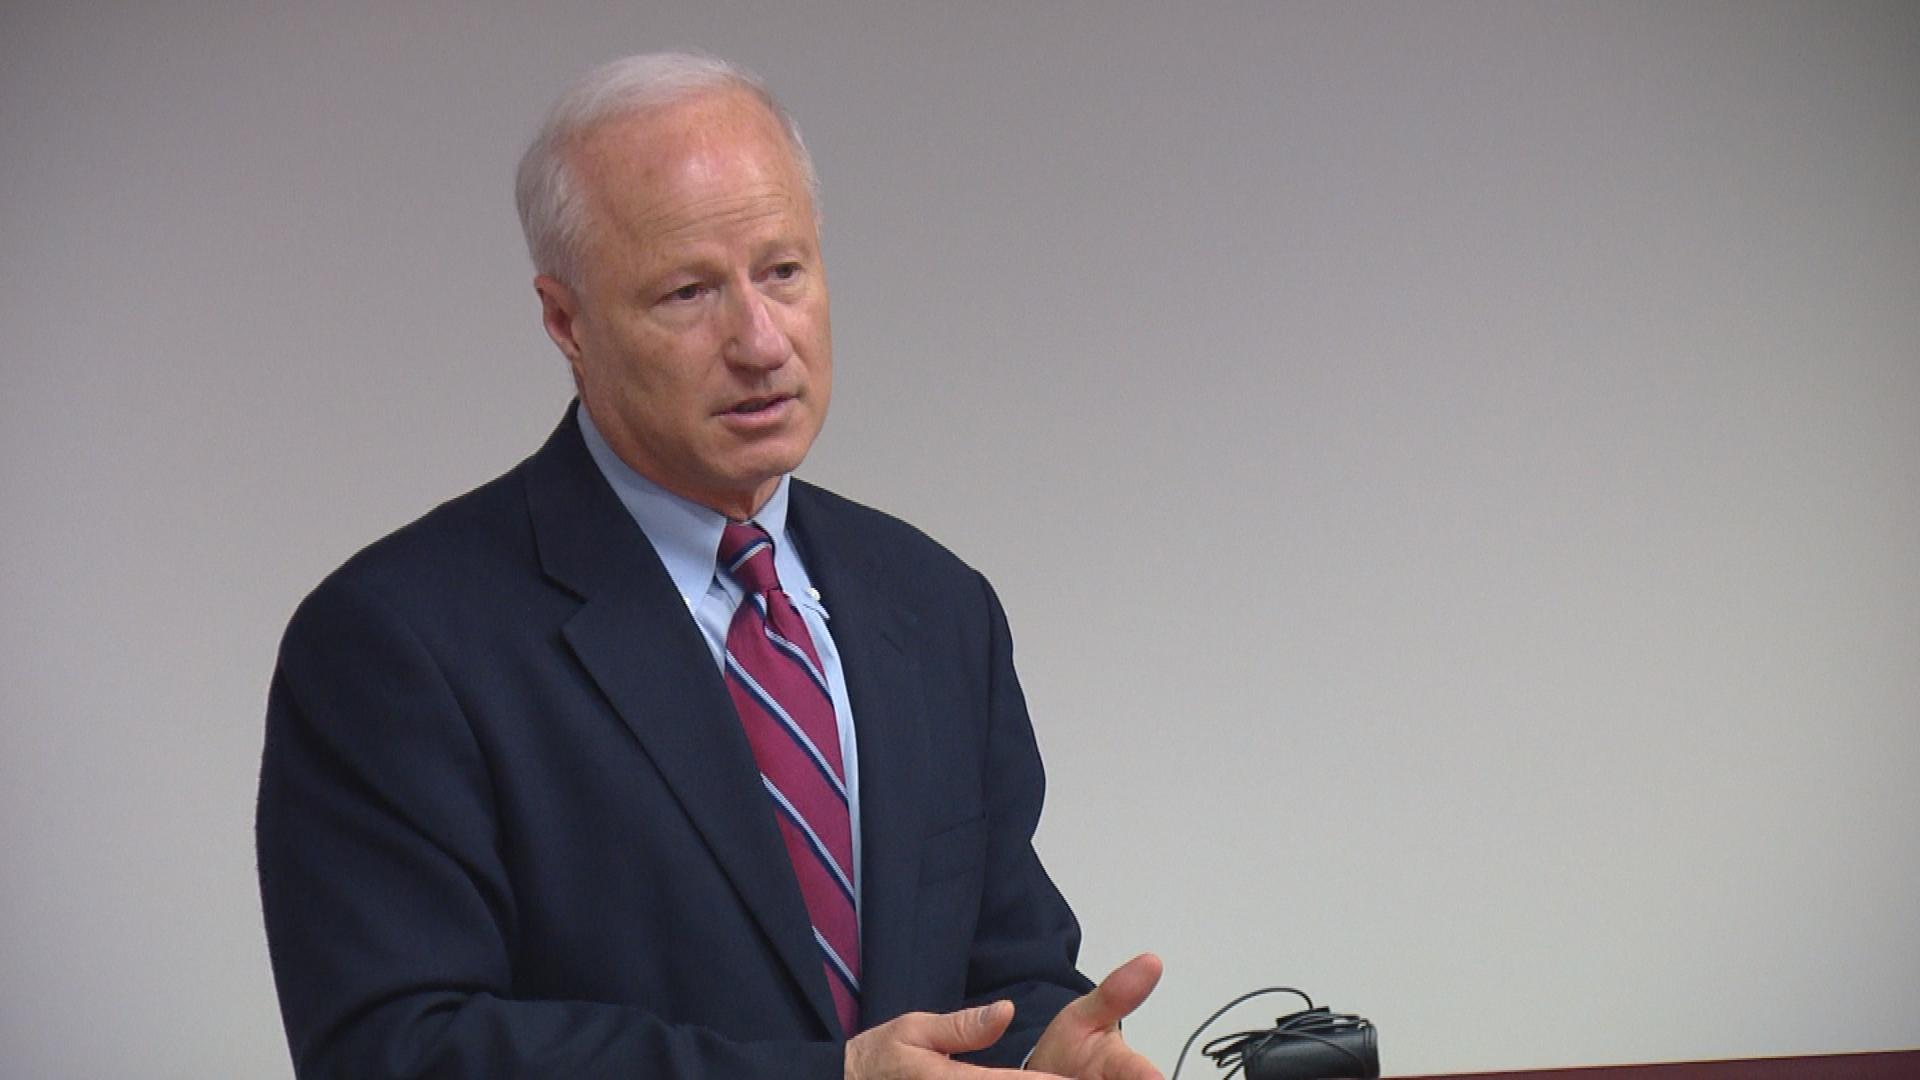 U.S. Rep. Mike Coffman in Aurora (credit: CBS)